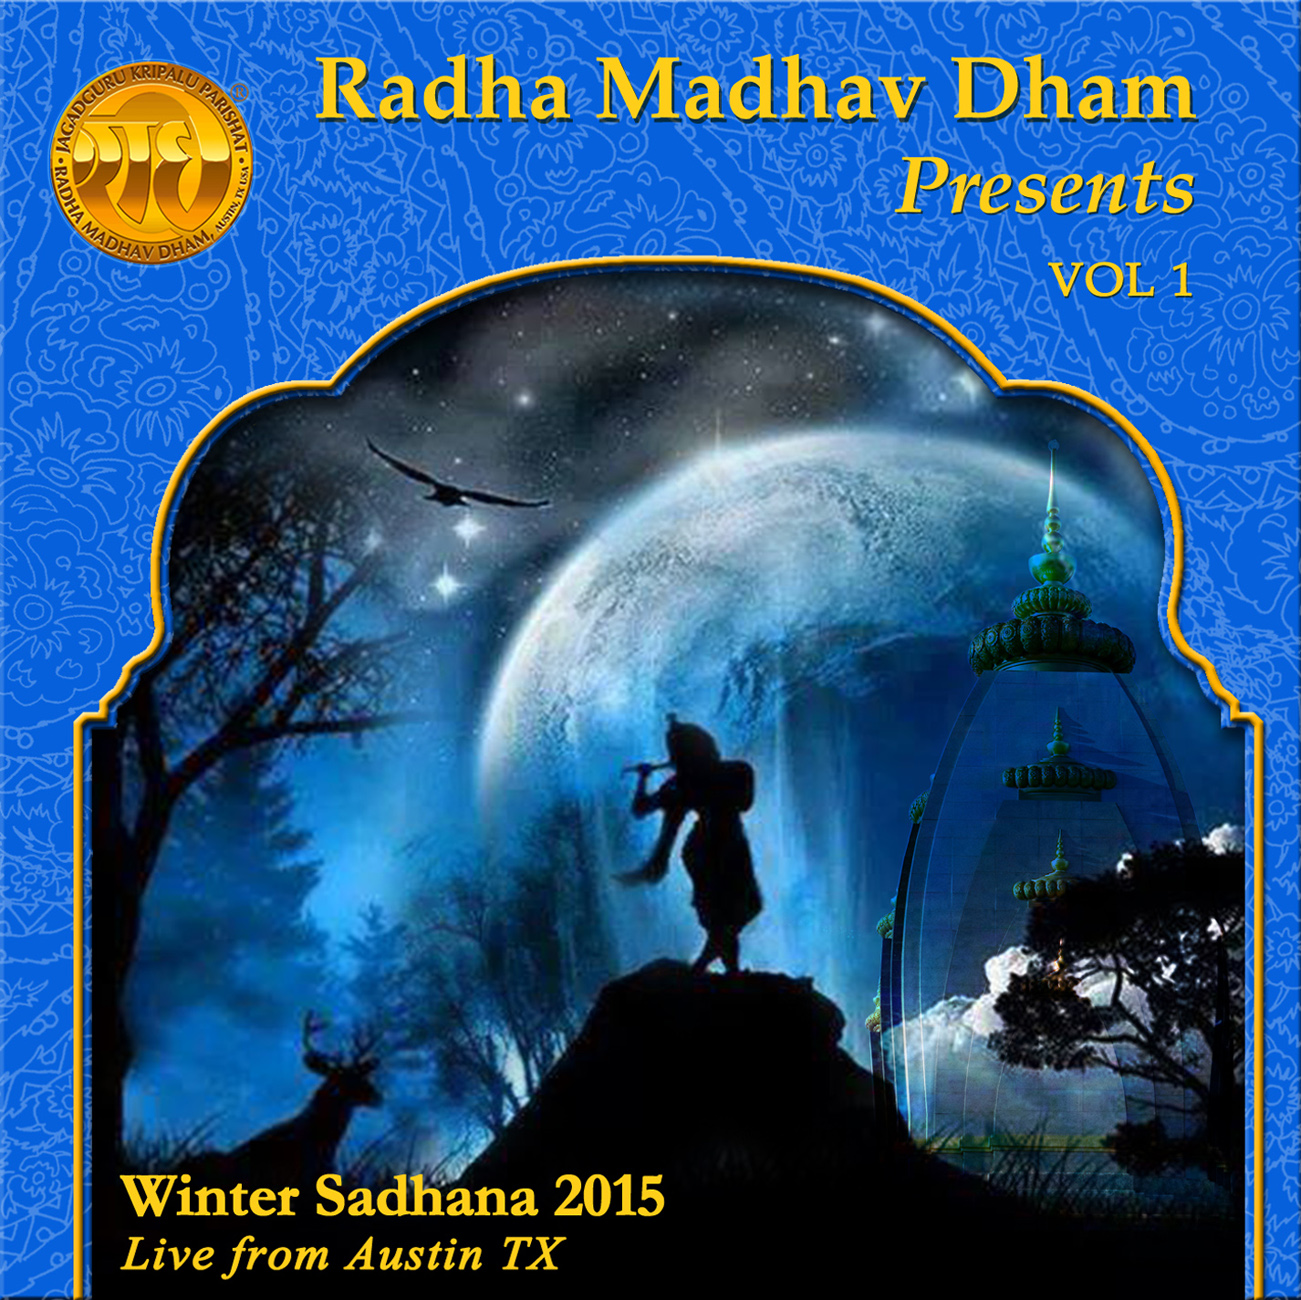 MP3-Ch1-45-Winter Sadhana 2016 Vol 1